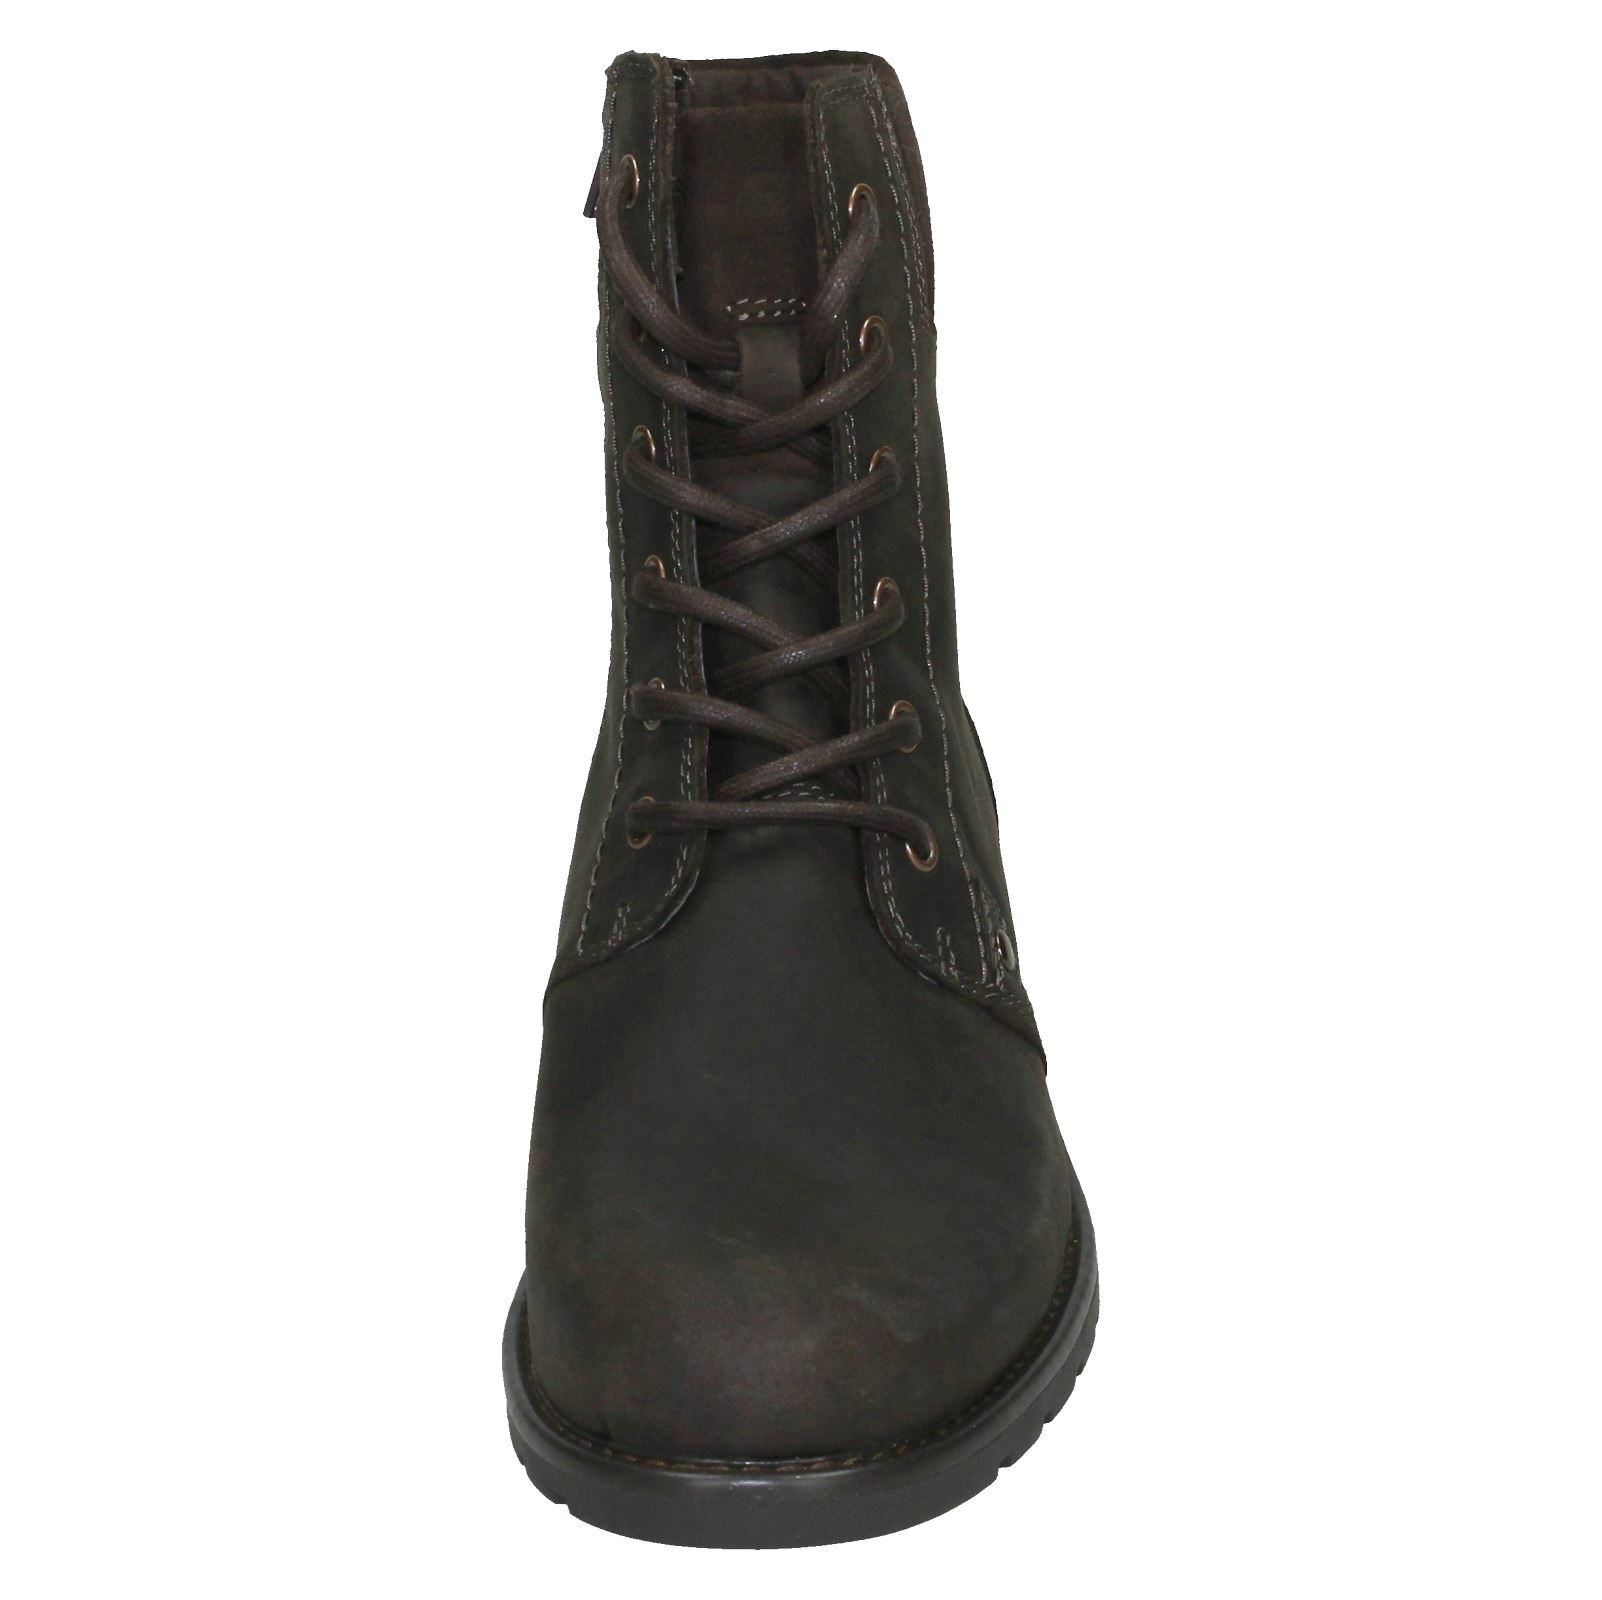 Ladies-Clarks-Casual-Lace-Up-Inside-Zip-Nubuck-Leather-Ankle-Boots-Orinoco-Spice thumbnail 36